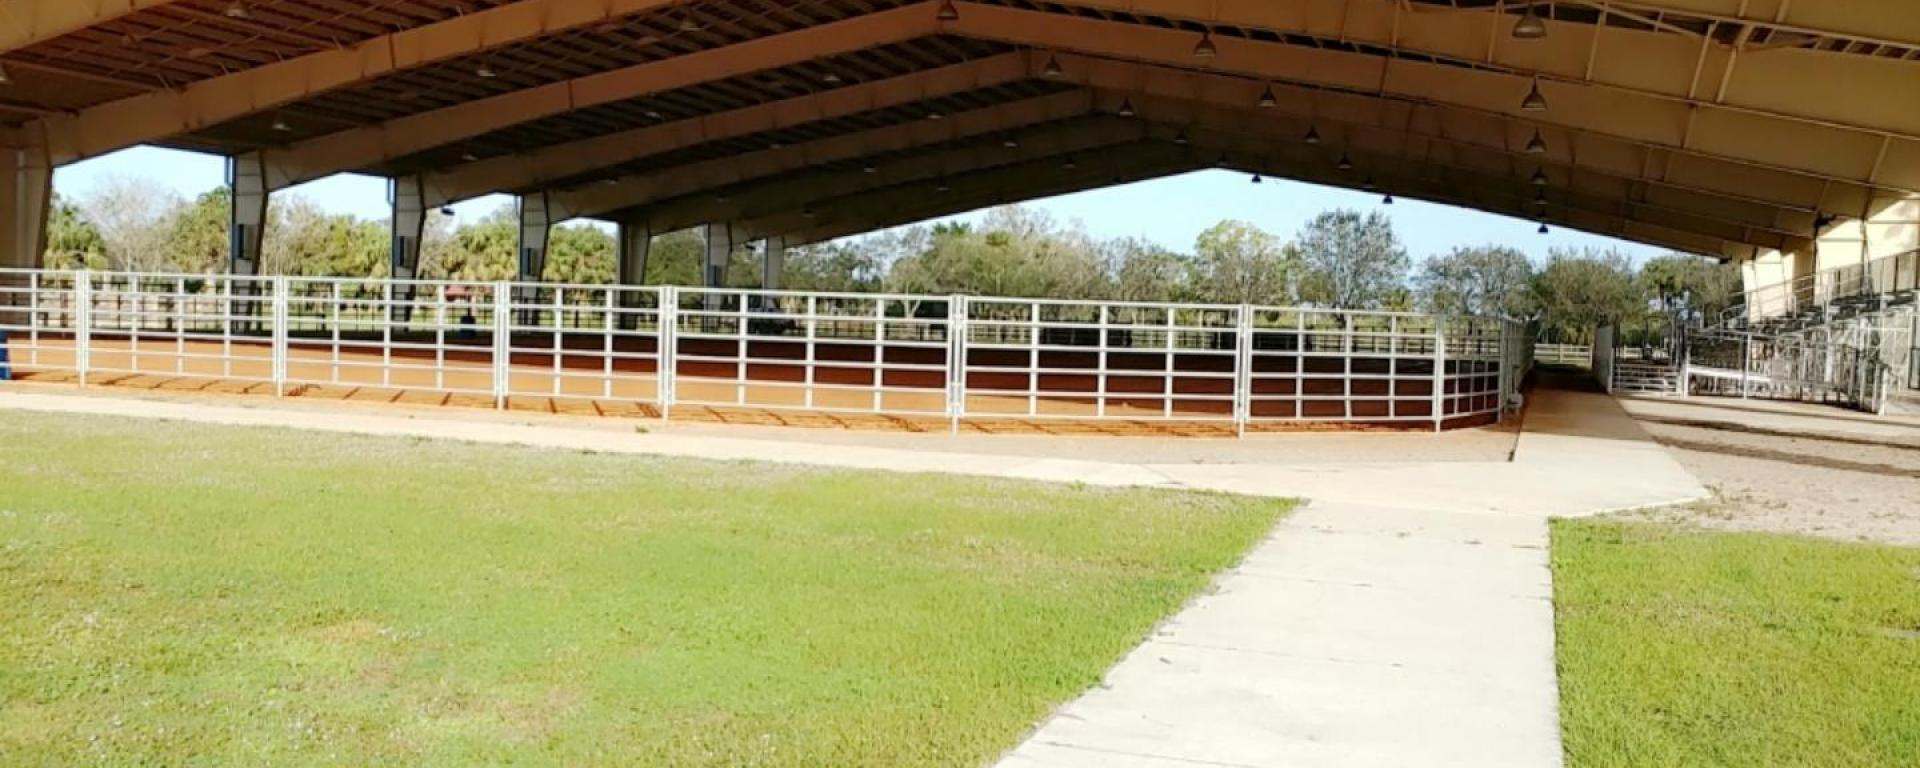 Timer Powers Equestrian Arena